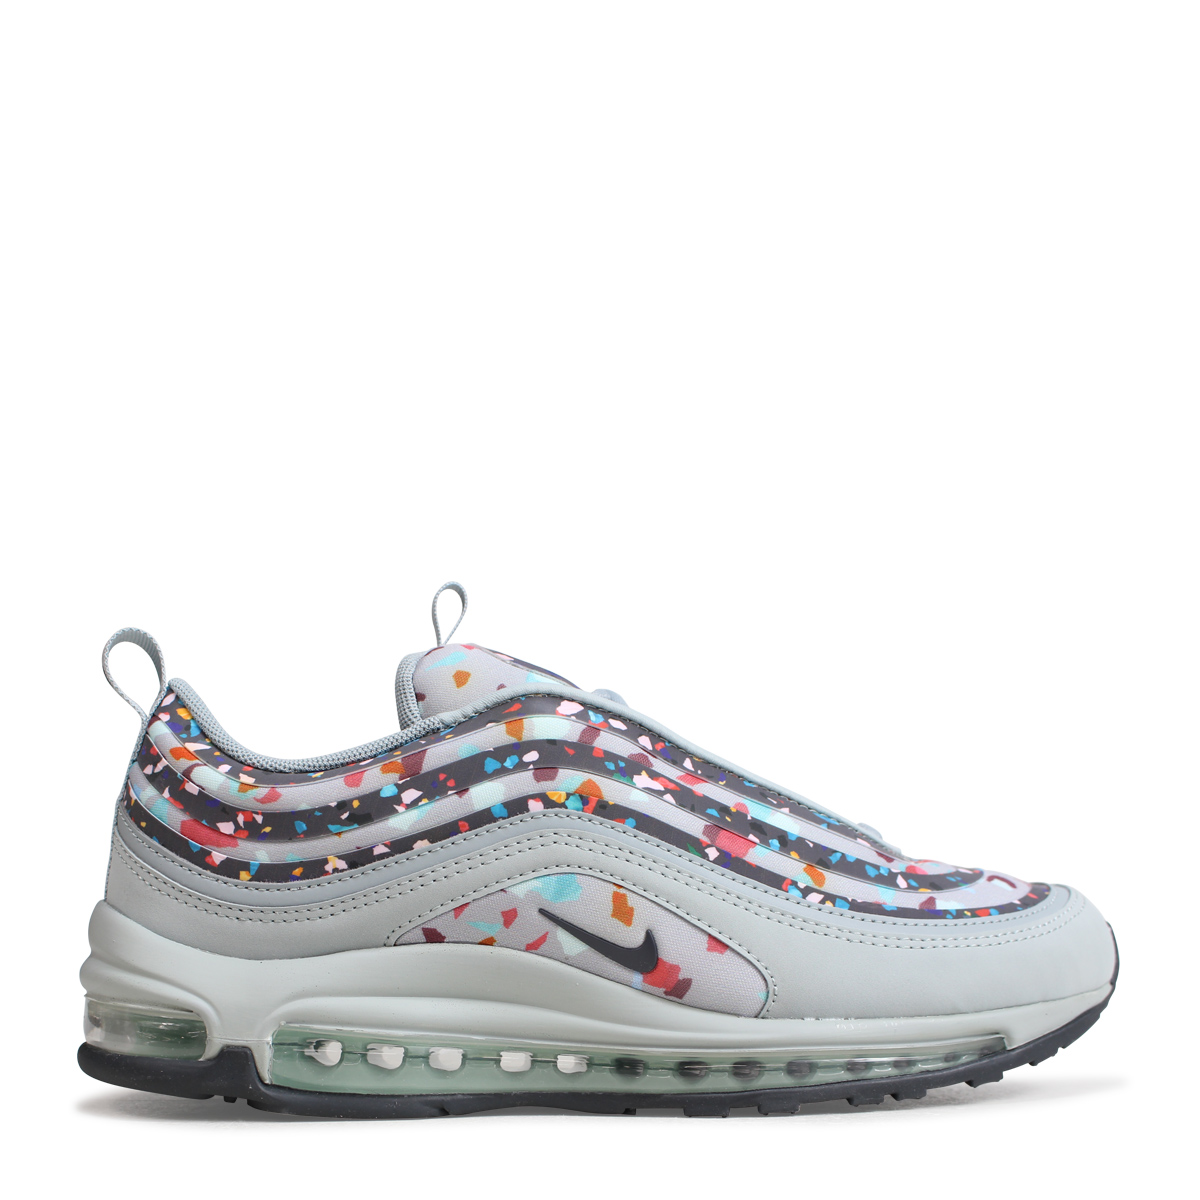 NIKE WMNS AIR MAX 97 ULTRA 17 PREMIUM Kie Ney AMAX 97 ultra Lady's men sneakers AO2325 001 gray [187]